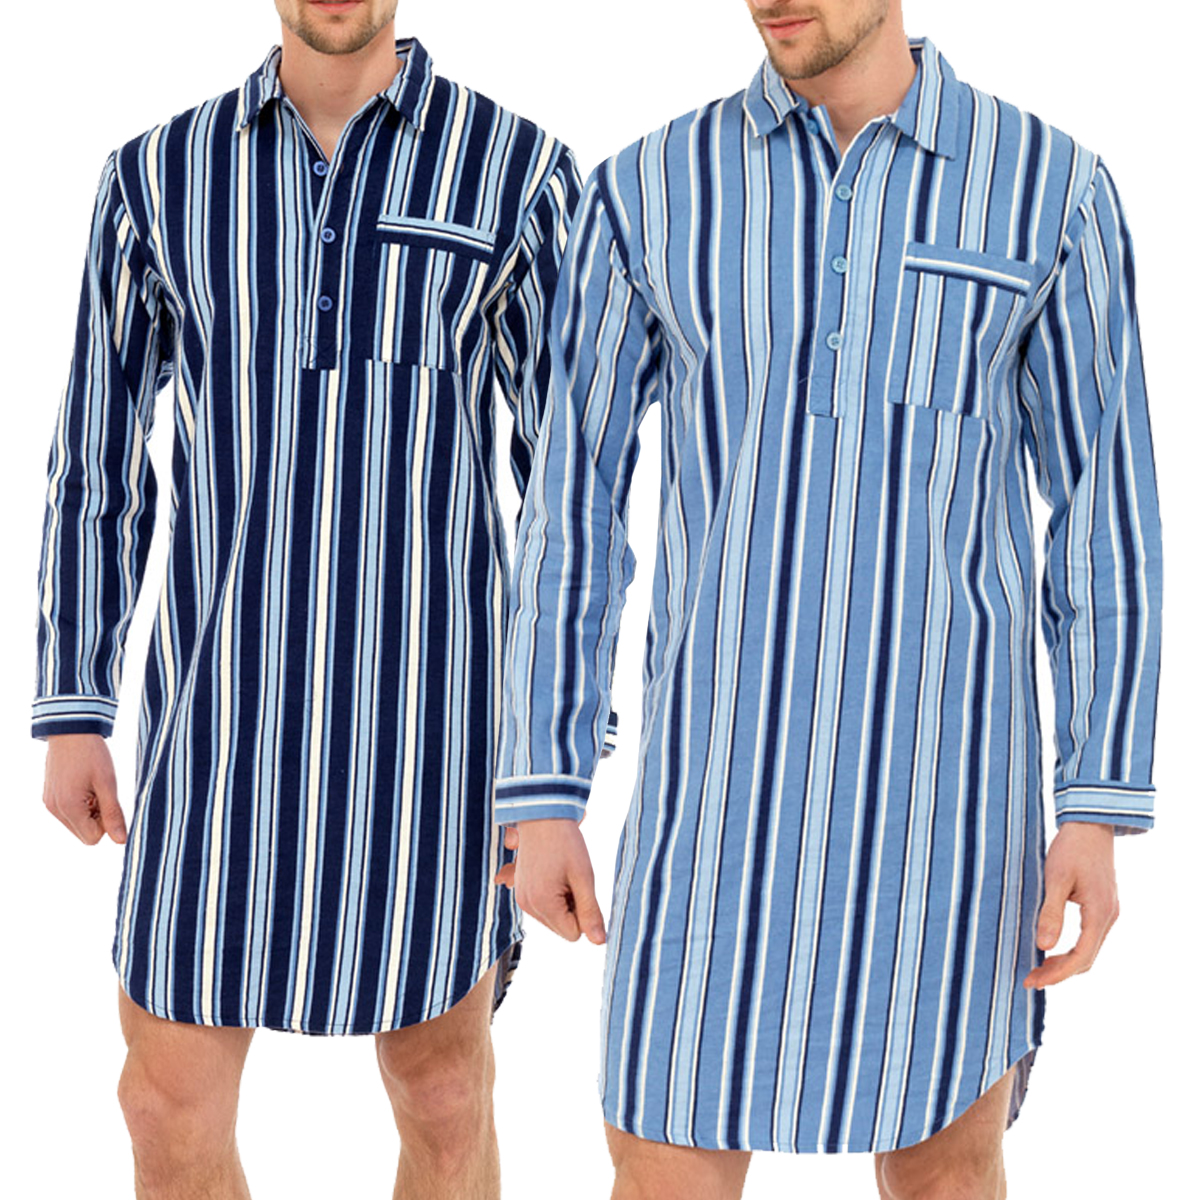 Short sleeve men's nightshirts are offer the same comfort and functionality. If you want pajamas with a little more thickness to them, a thermal shirt is a great go-to shirt. Its comfortable and breathable fabric will keep you cozy when you sleep and relaxed when getting up for your morning routine.